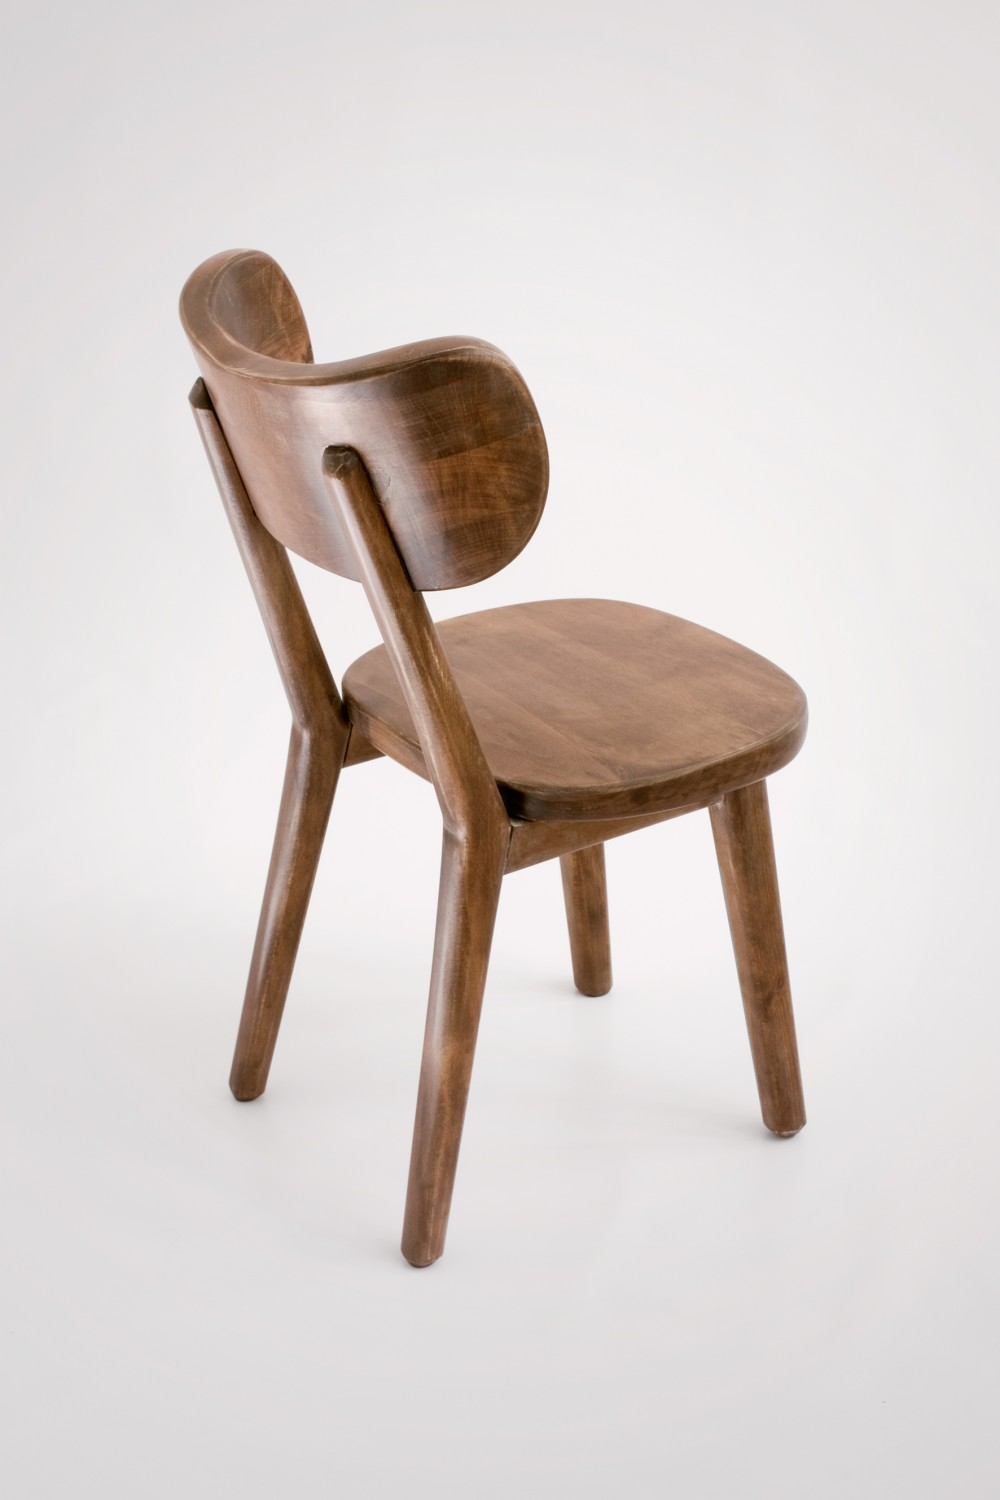 Dumba chair by Antonio Arico